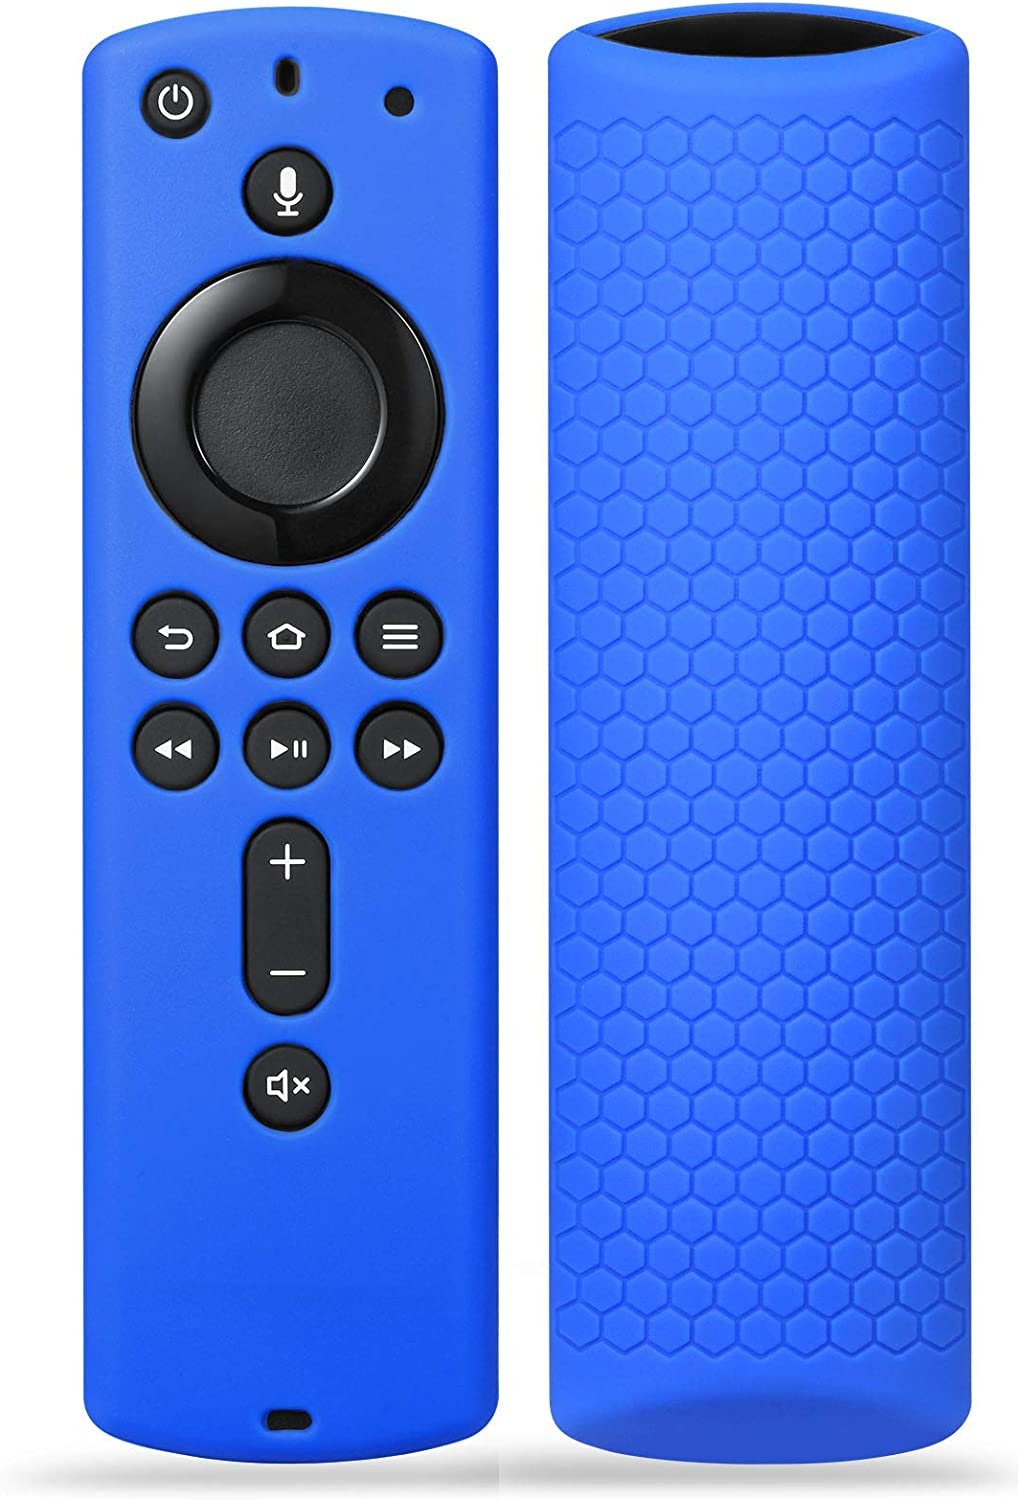 Silicone Remote Case Cover for Fir TV Stick 4K / Fir TV Cube/Fir TV (3rd Gen), SYMOTOP Shockproof Anti Slip Silicone Remote Case Compatible with All-New 2nd Gen Alexa Voice Remote Control- Dark Blue